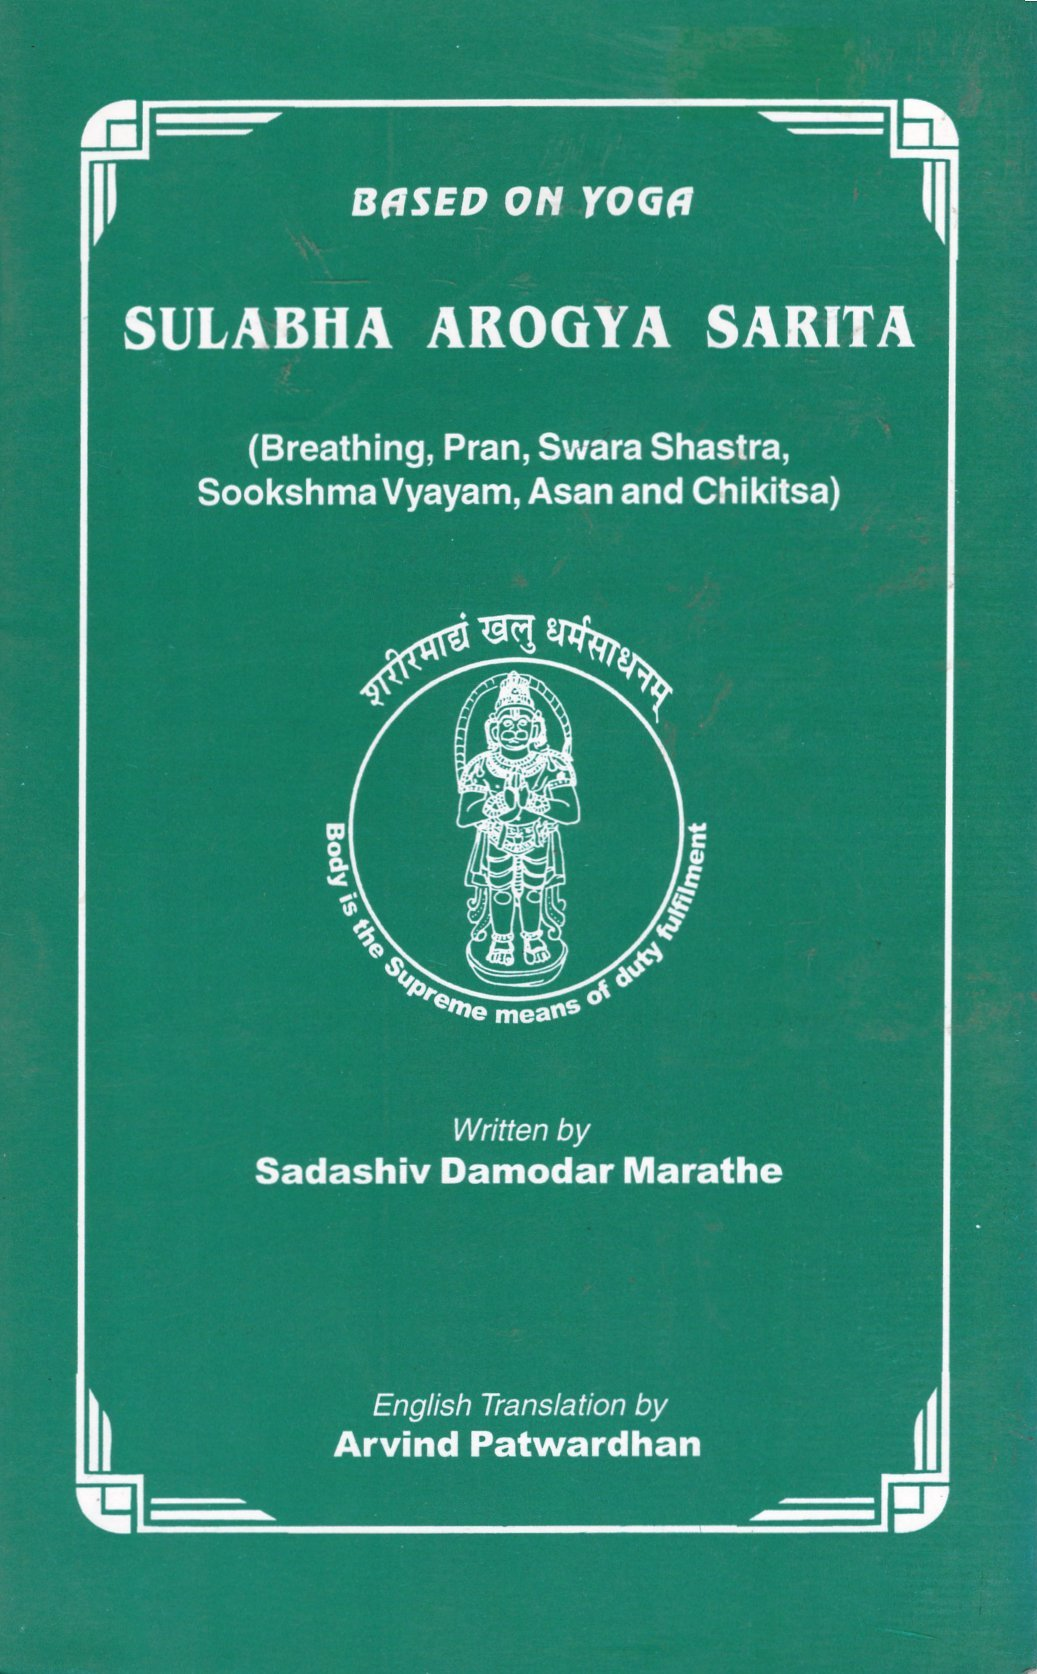 Sulabh Arogya sarita - Based on Yoga